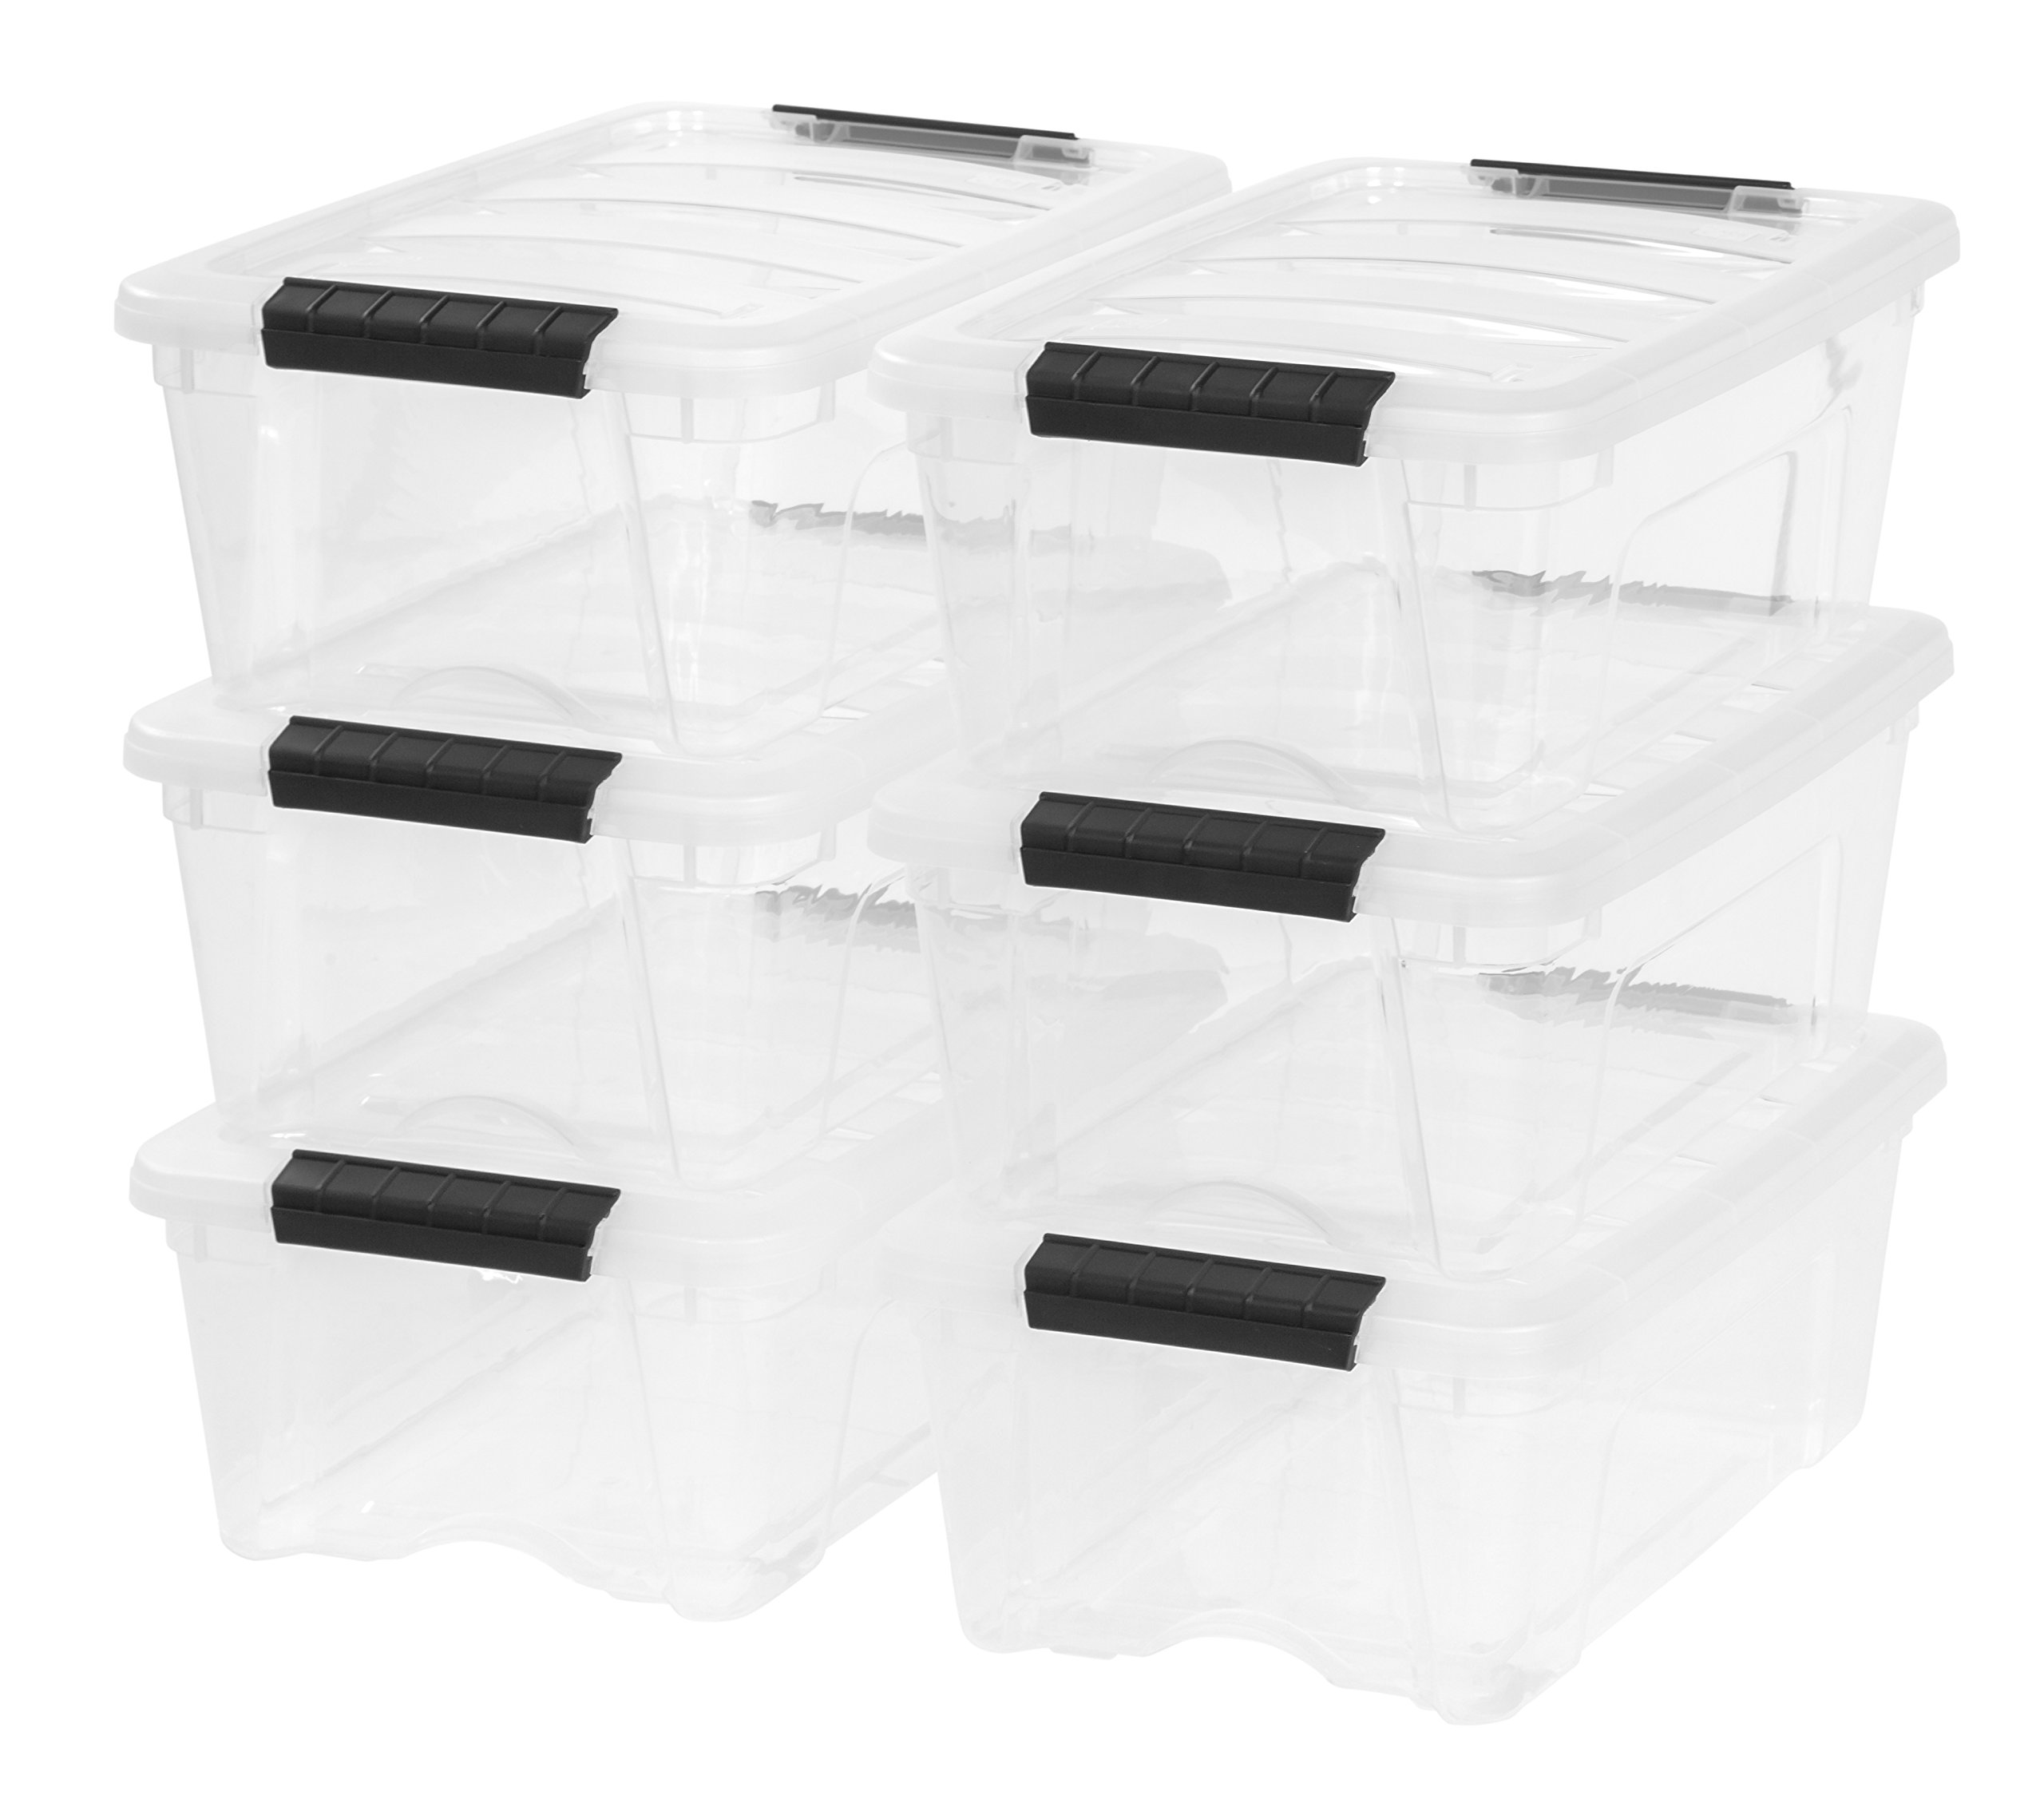 IRIS USA, Inc. TB-42 12 Quart Stack & Pull Box, Clear, 6 Stack and Pull by IRIS USA, Inc.